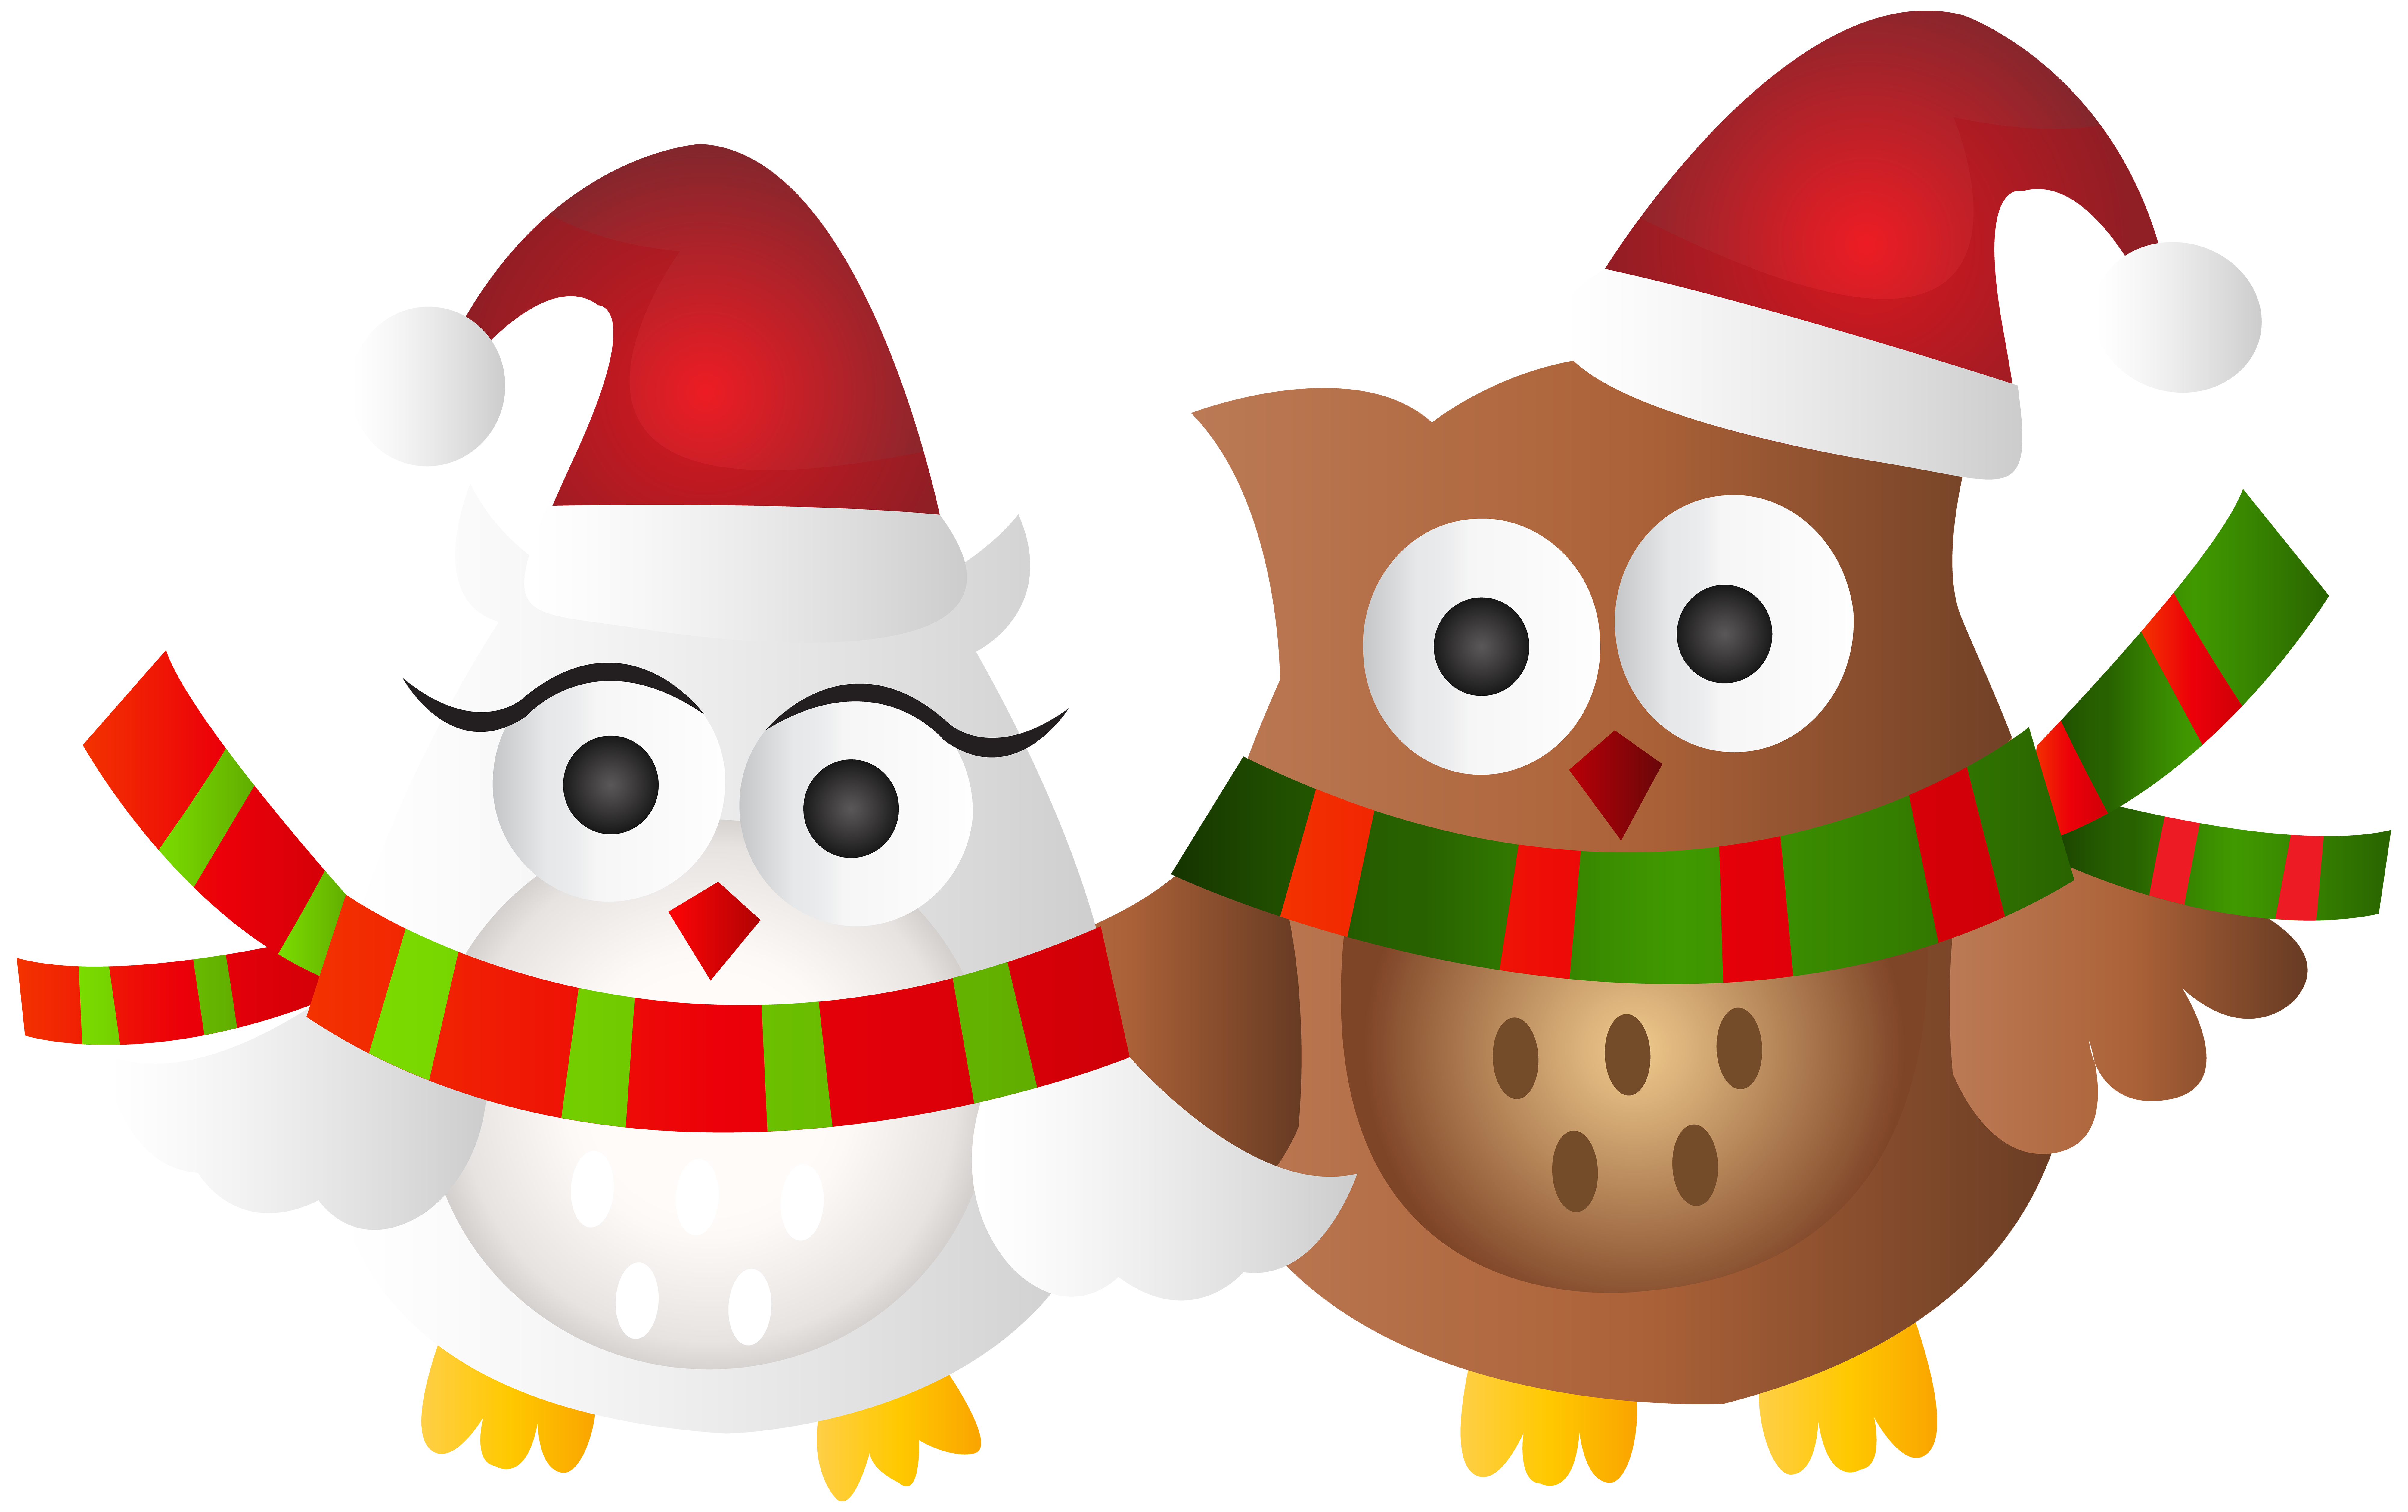 Christmas Owls Transparent Clip Art Image.